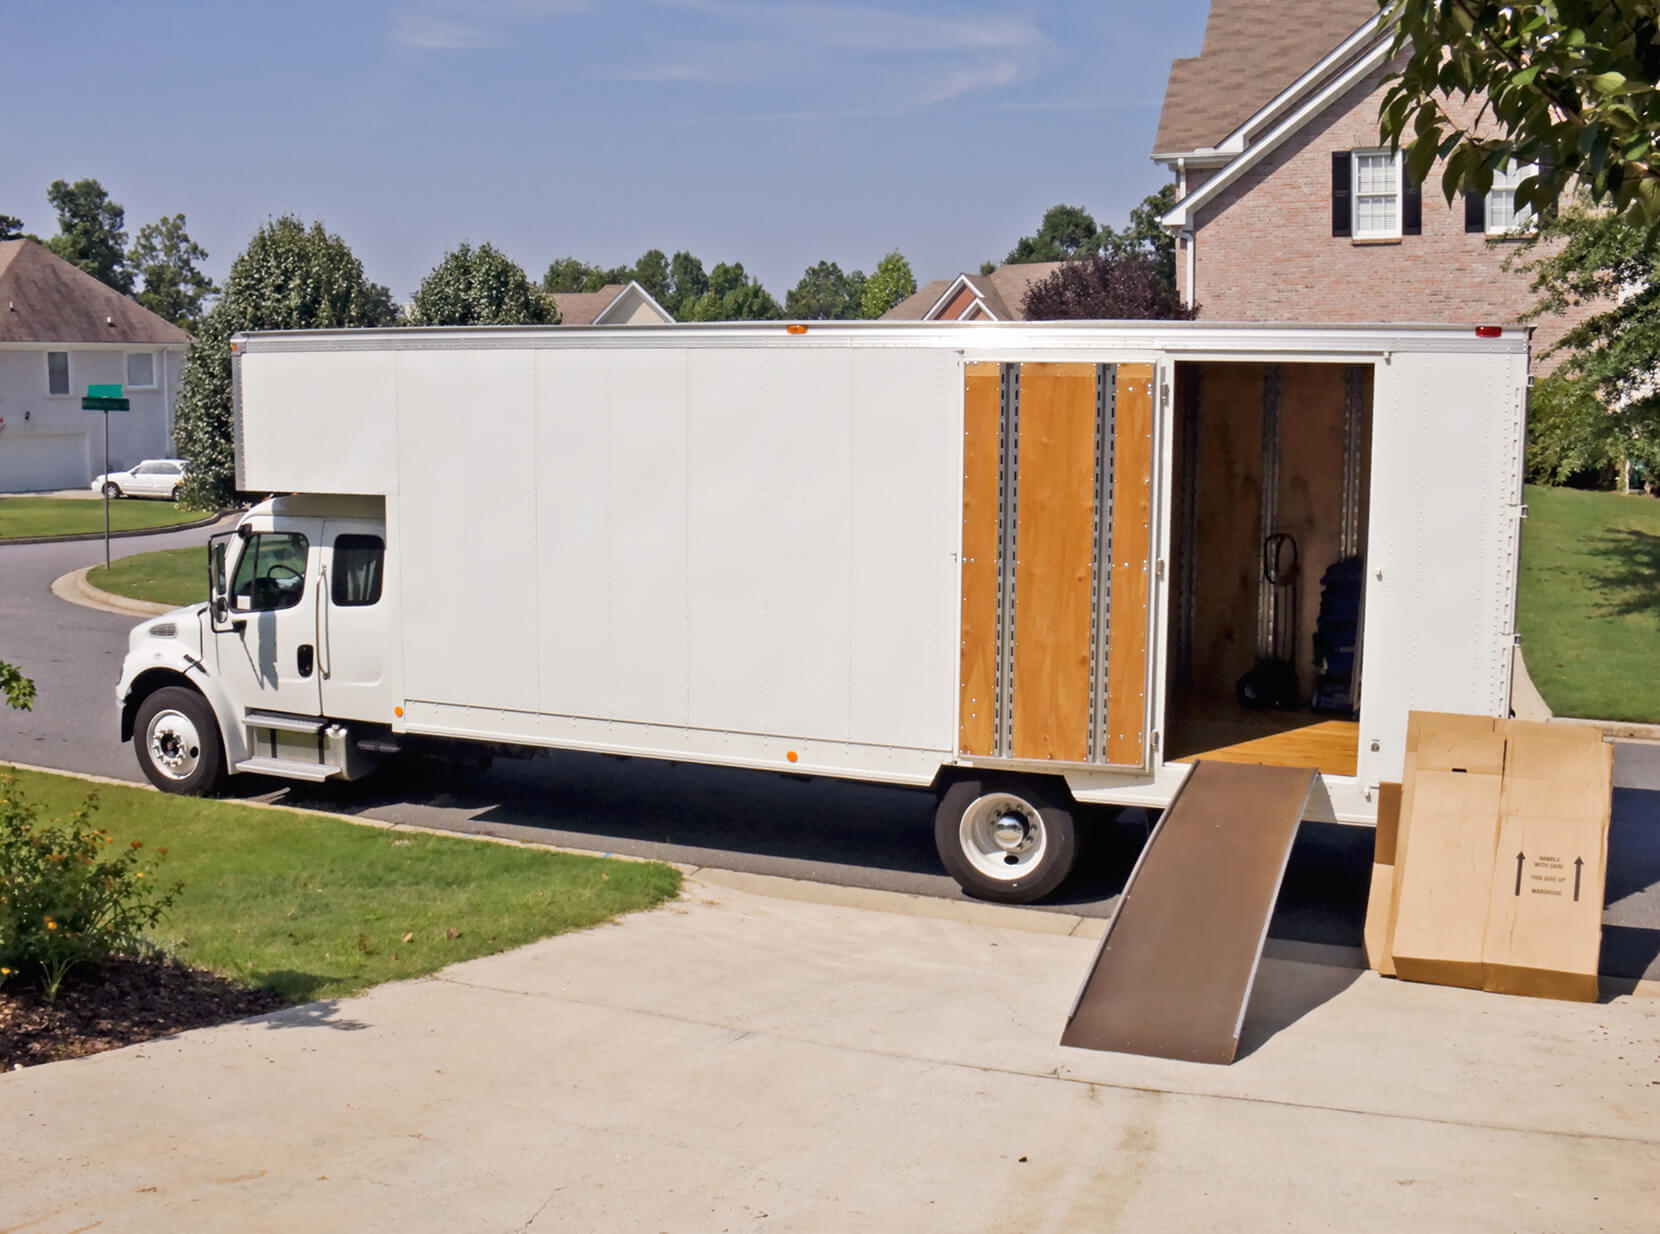 Relocating vehicle